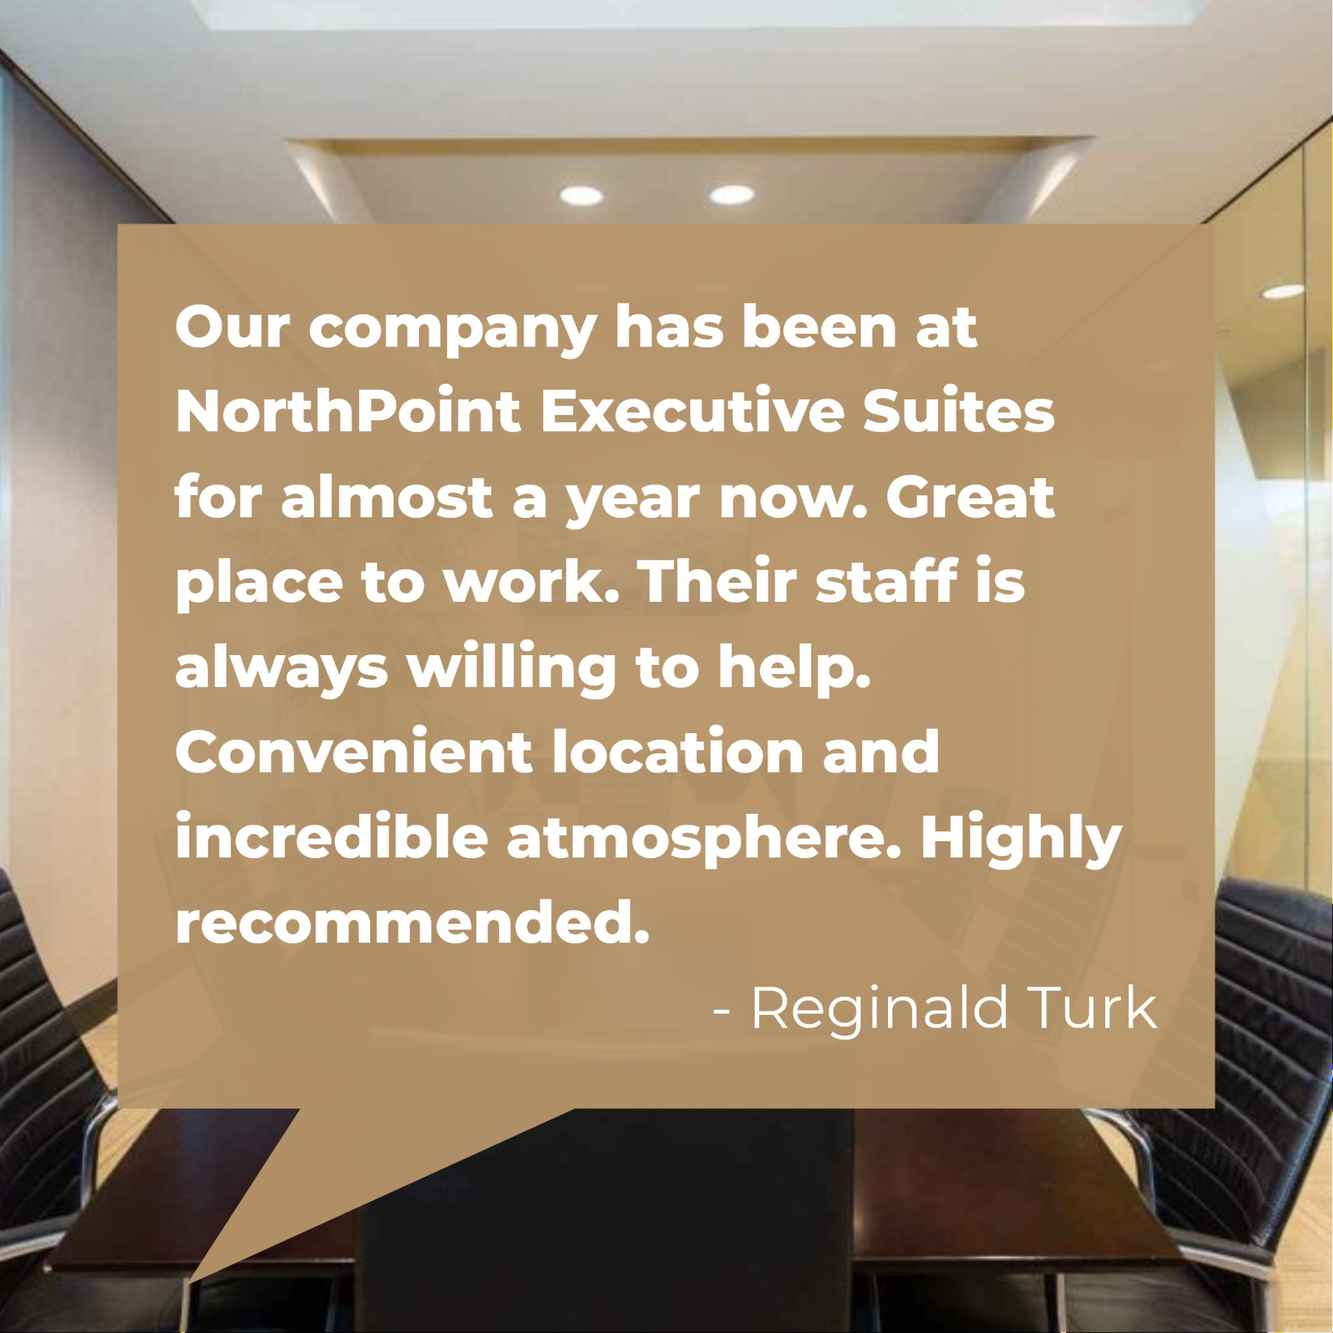 Reginald Turk highly recommends NorthPoint Executive Suites.